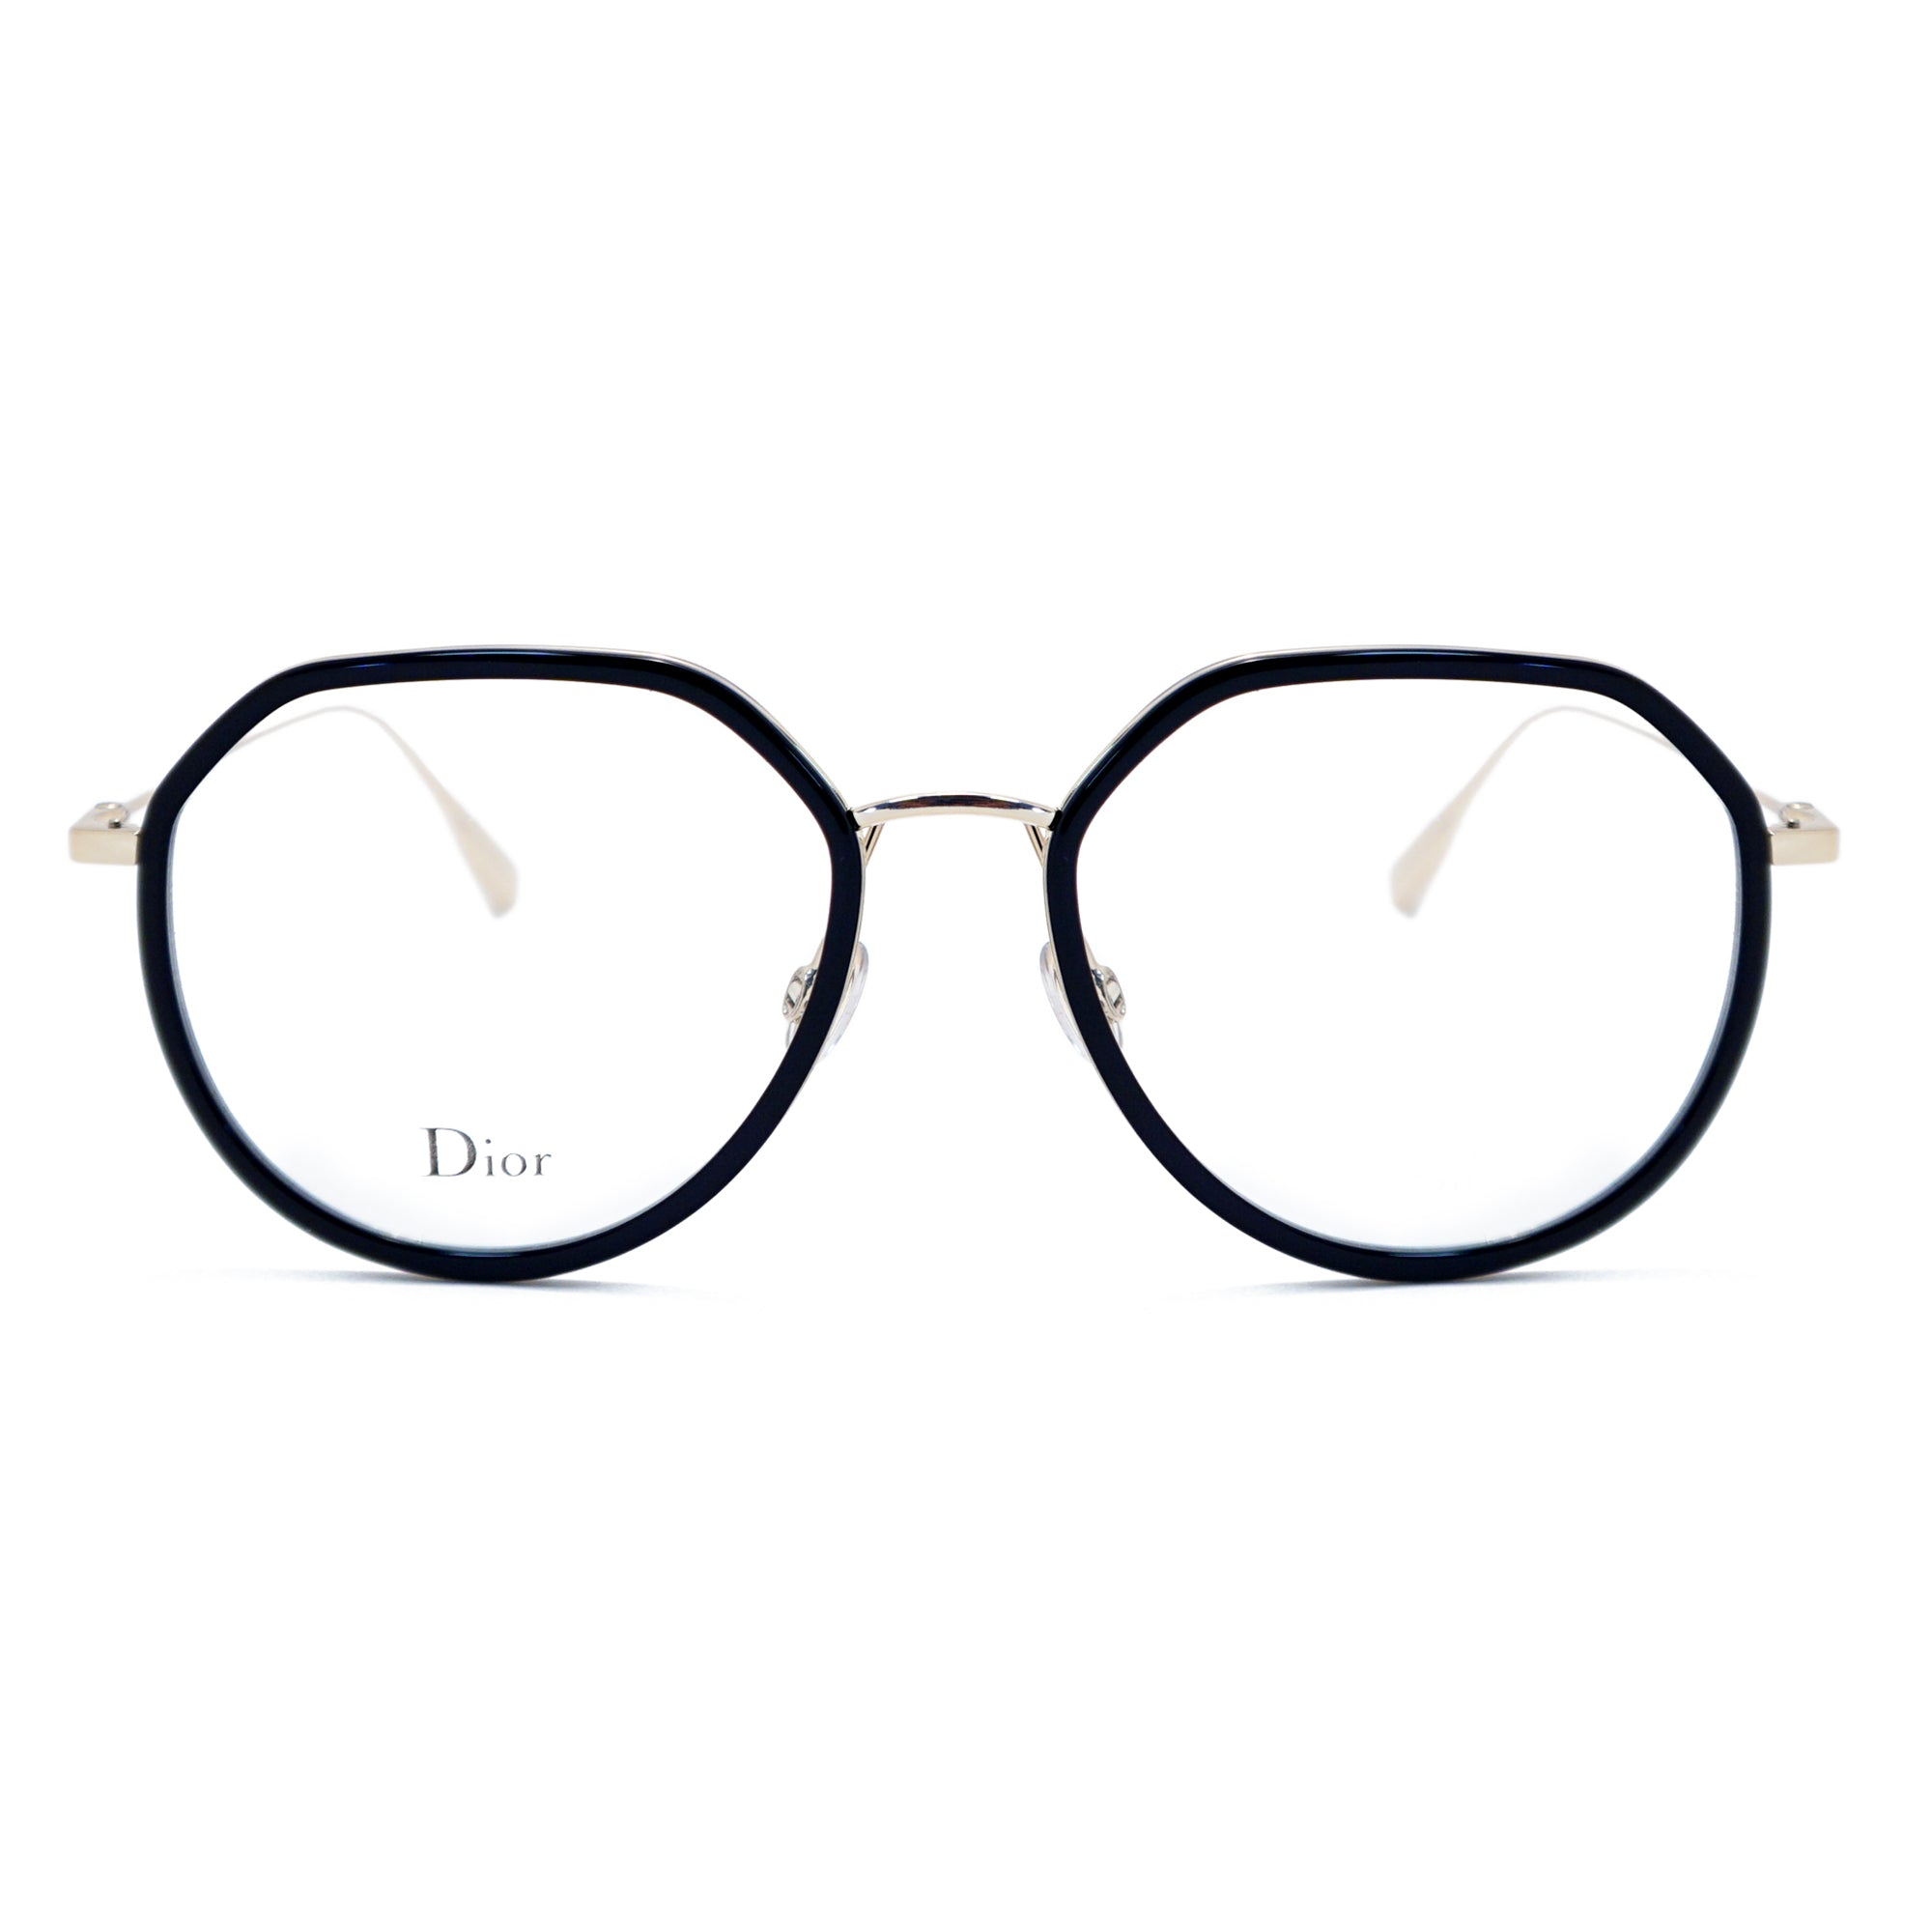 Christian Dior Round Glasses Stellaire O9 2M218 52